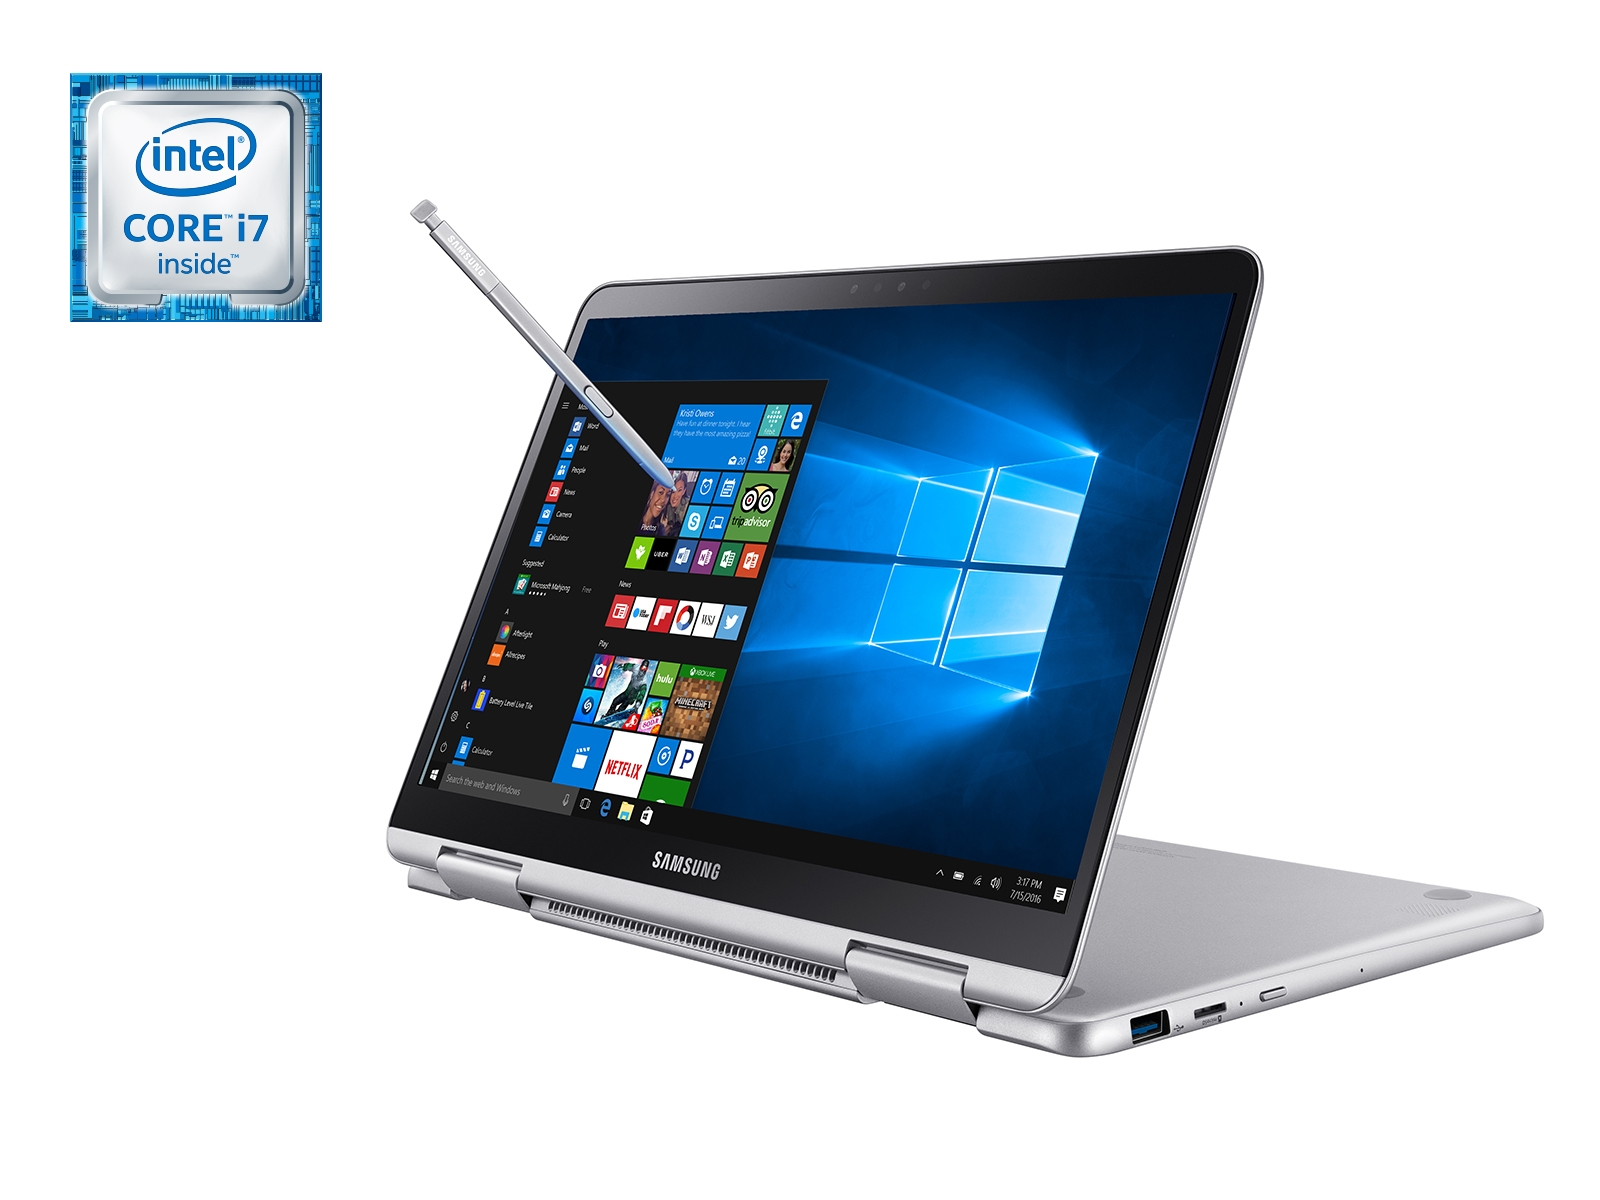 Notebook 9 Pen 133 Windows Laptops Np930qaa K01us Samsung Us